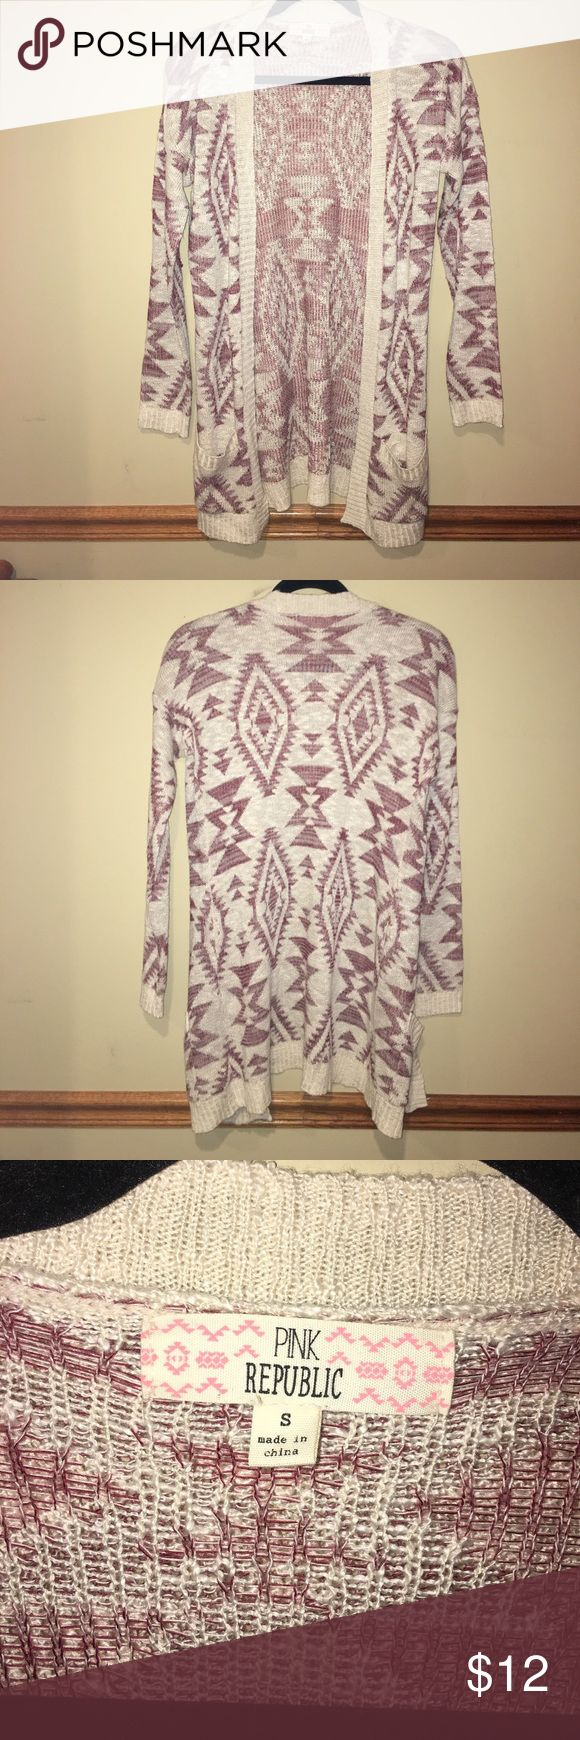 NWOT tribal print cardigan adorable tribal print cardigan w slouchy pockets! soft and comfy! long enough to cover your butt! never worn; only removed tags! burgundy and cream! effortlessly cute fall/winter outfit! Pink Republic Sweaters Cardigans